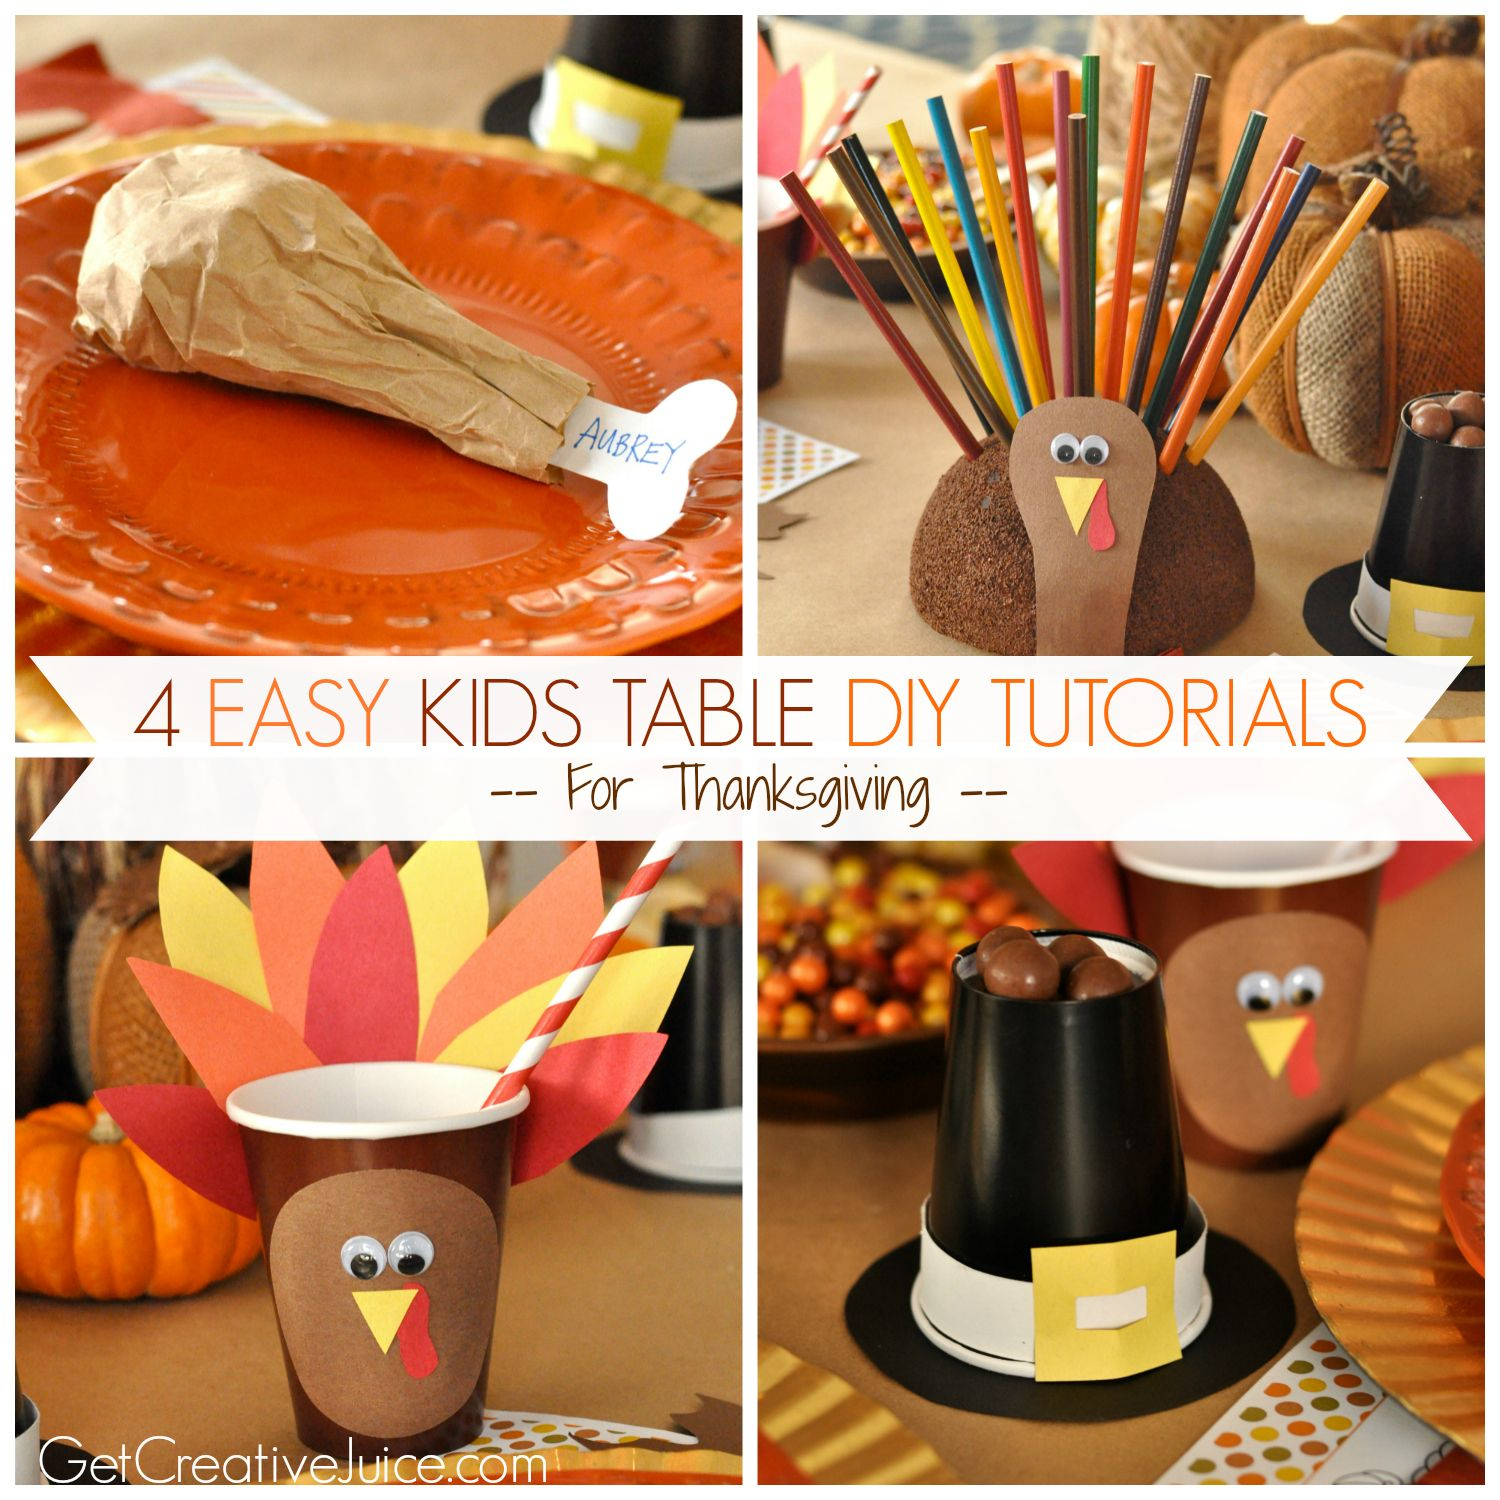 Easy Diy Kids Thanksgiving Table Ideas Creative Juice Thanksgiving Kids Thanksgiving Kids Table Thanksgiving Table Crafts